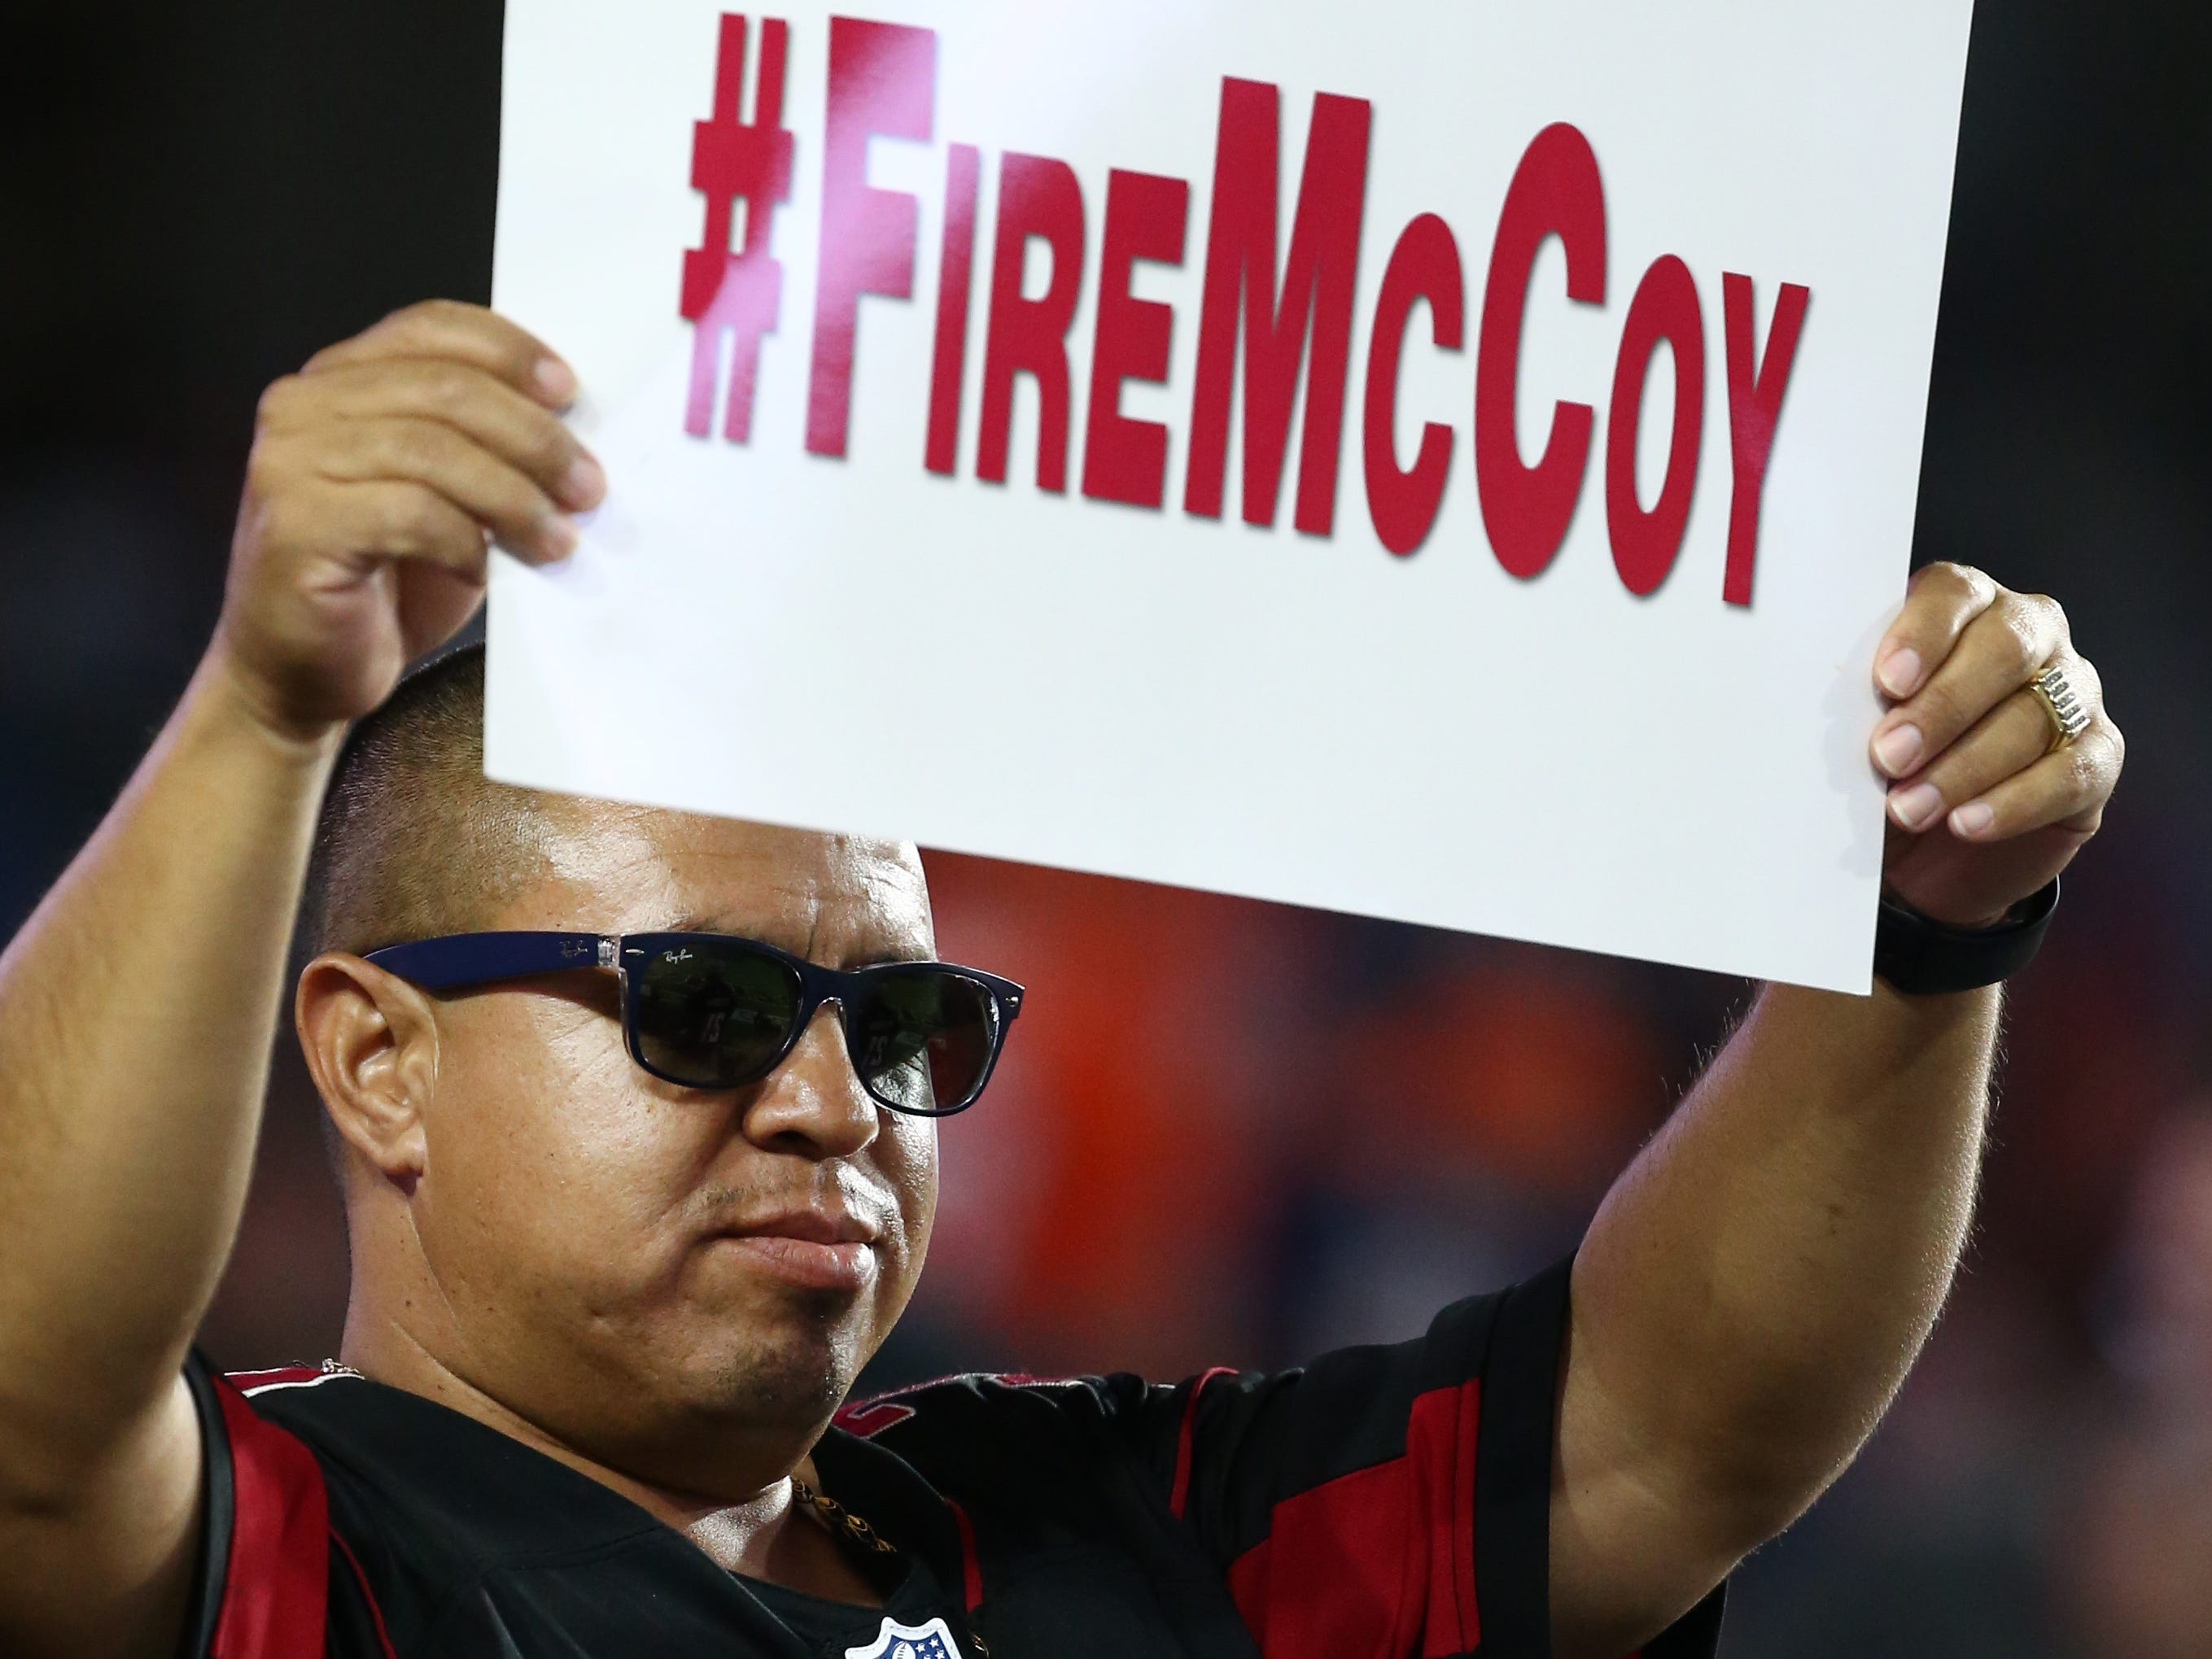 An Arizona Cardinals fan holds-up a sign #FireMcCoy in the first half at State Farm Stadium in Glendale, Ariz.